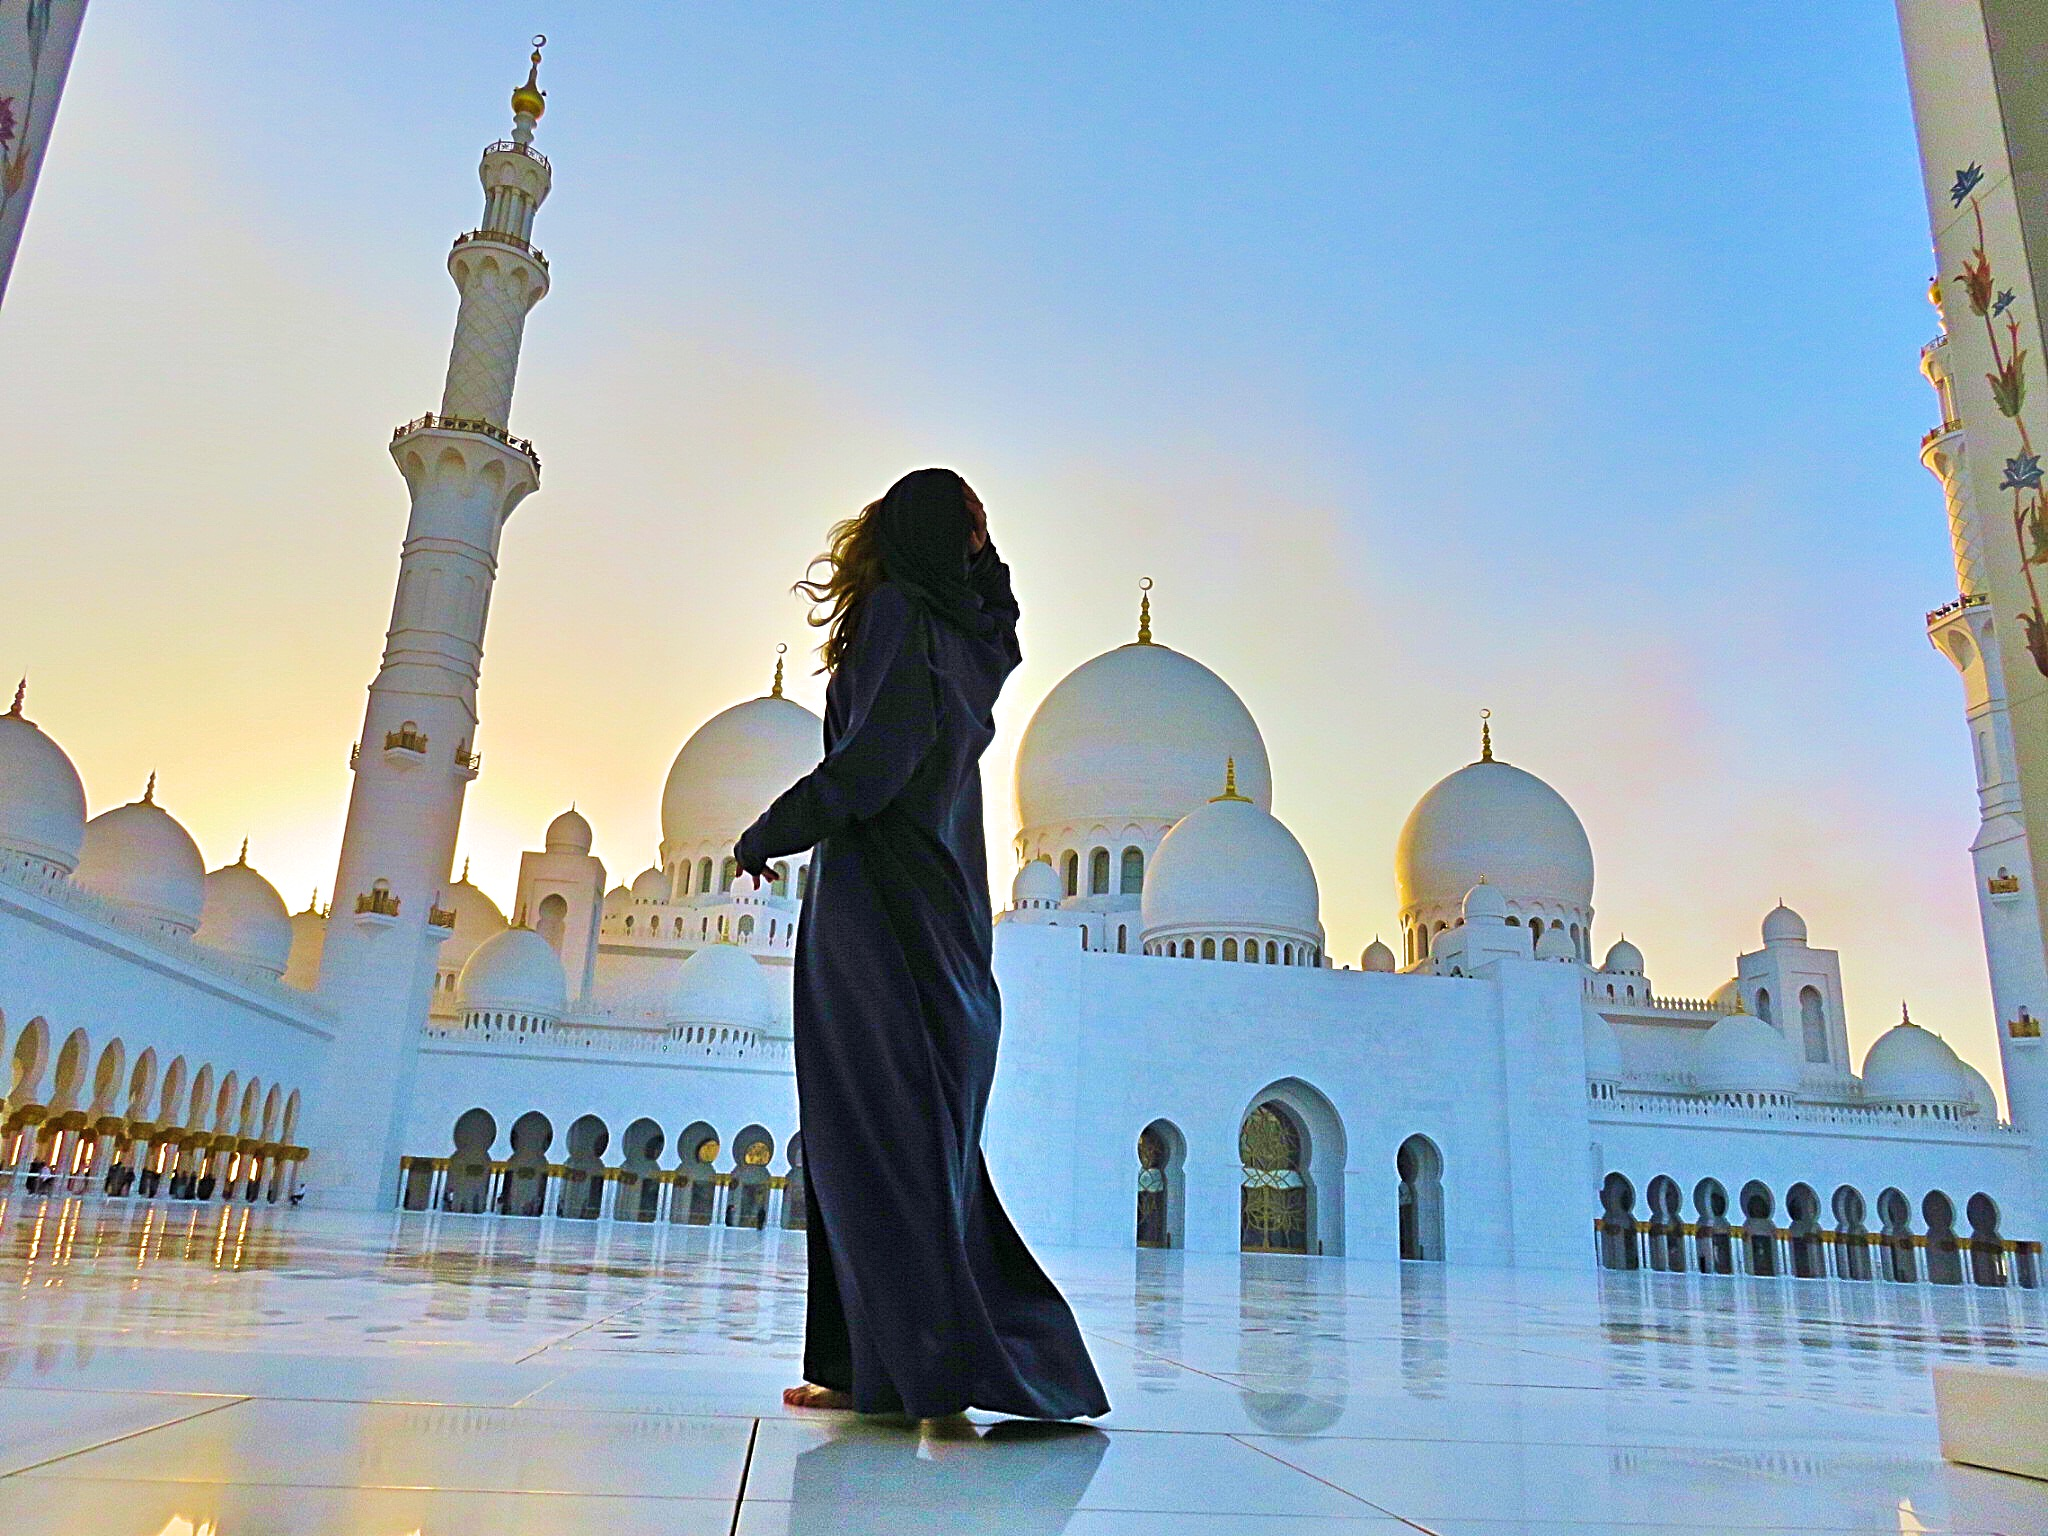 The mosque in Abu Dhabi